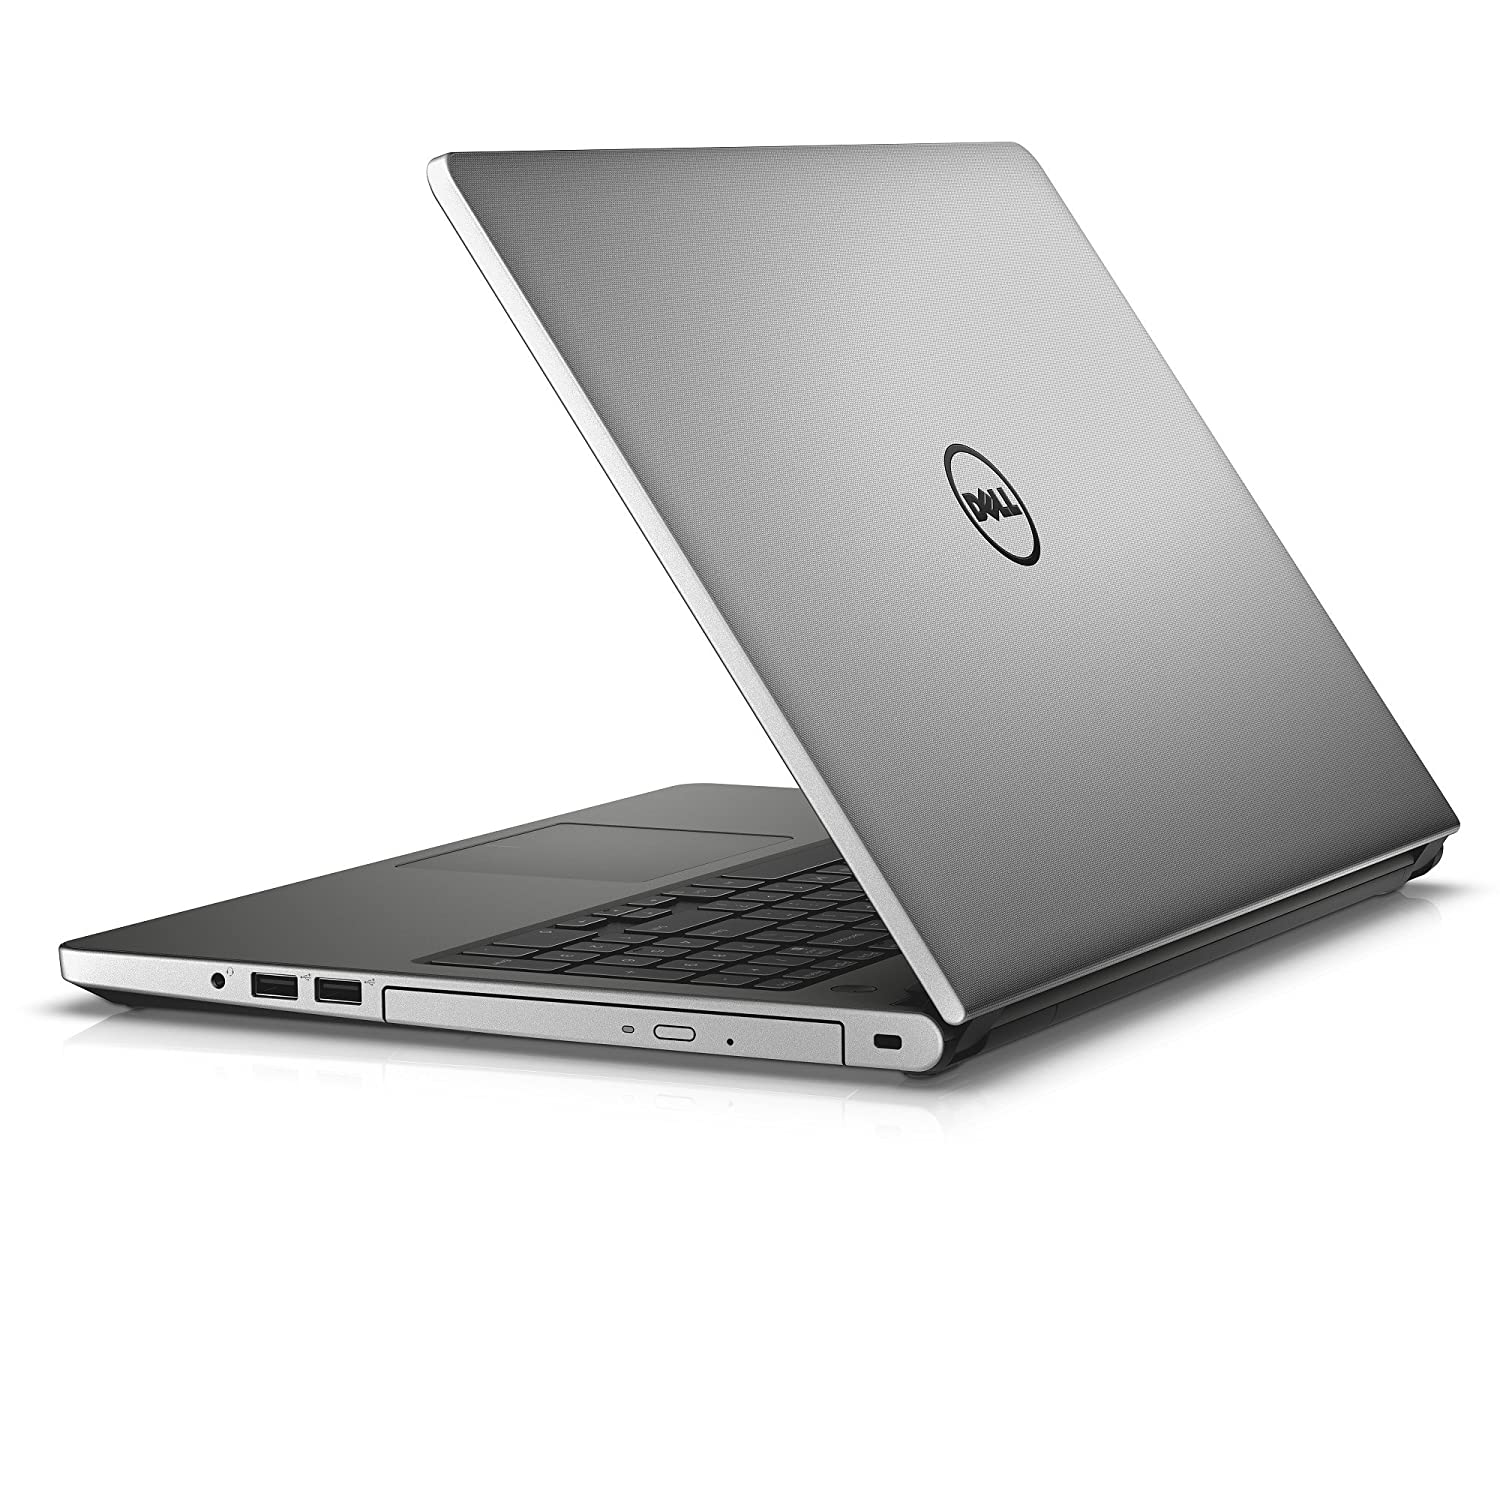 Dell Studio 1555 Notebook FastAccess Facial Recognition Windows 8 X64 Driver Download